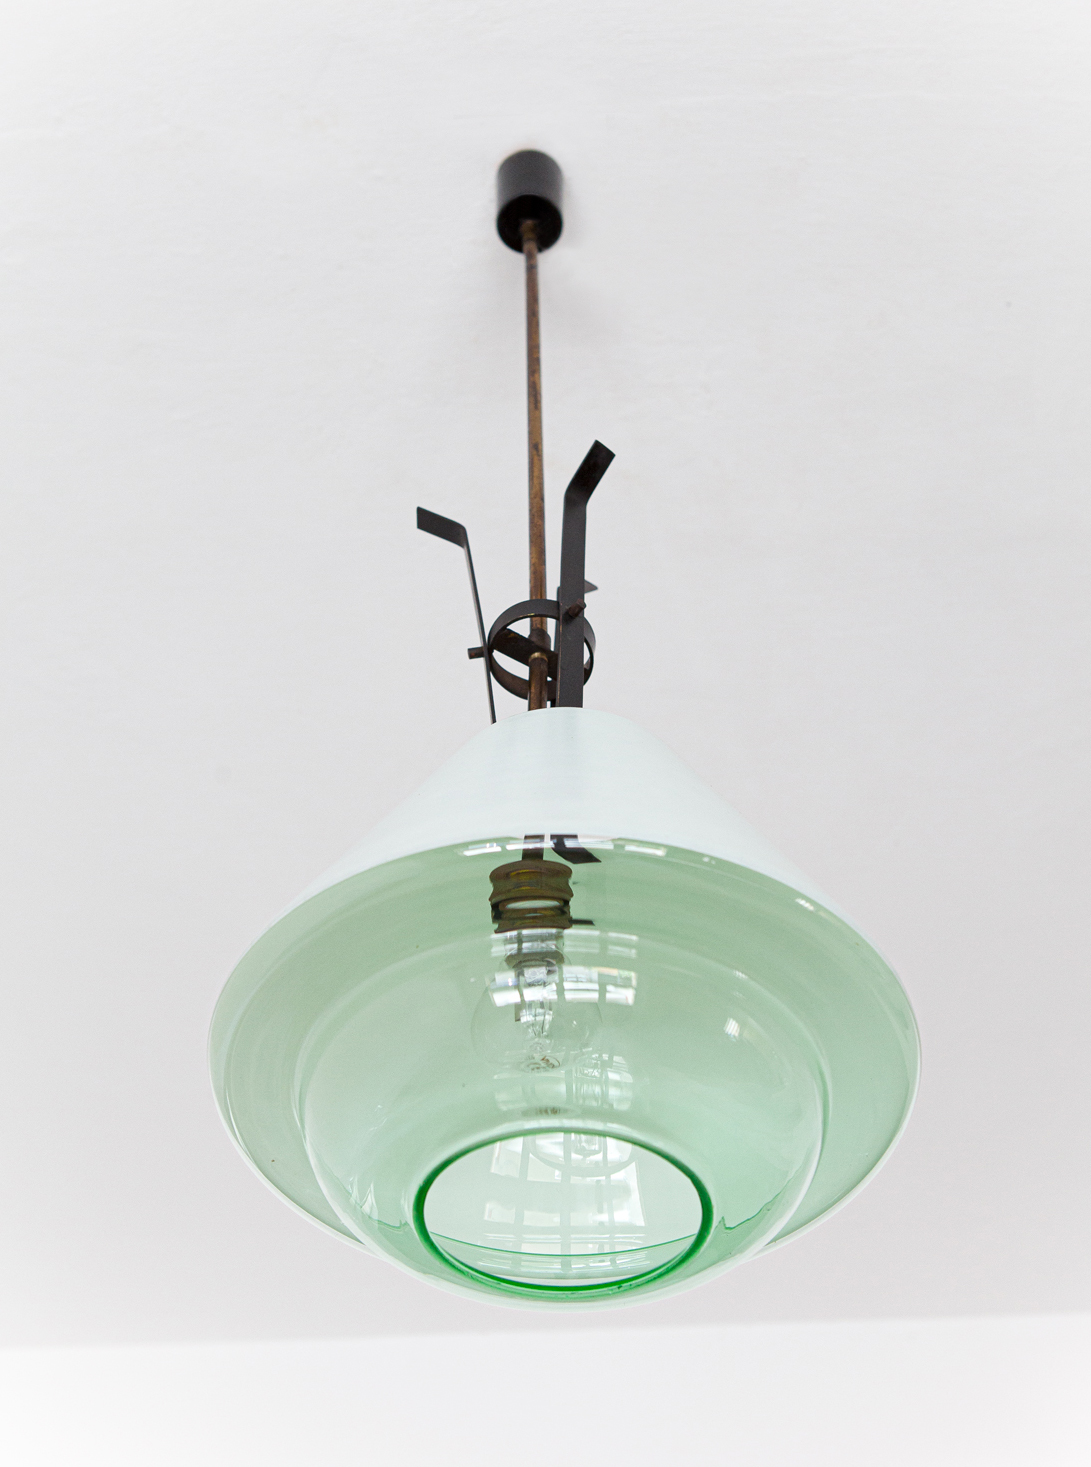 1950s-brass-and-glass-pendant-lamp-by-stlnovo-4-l92